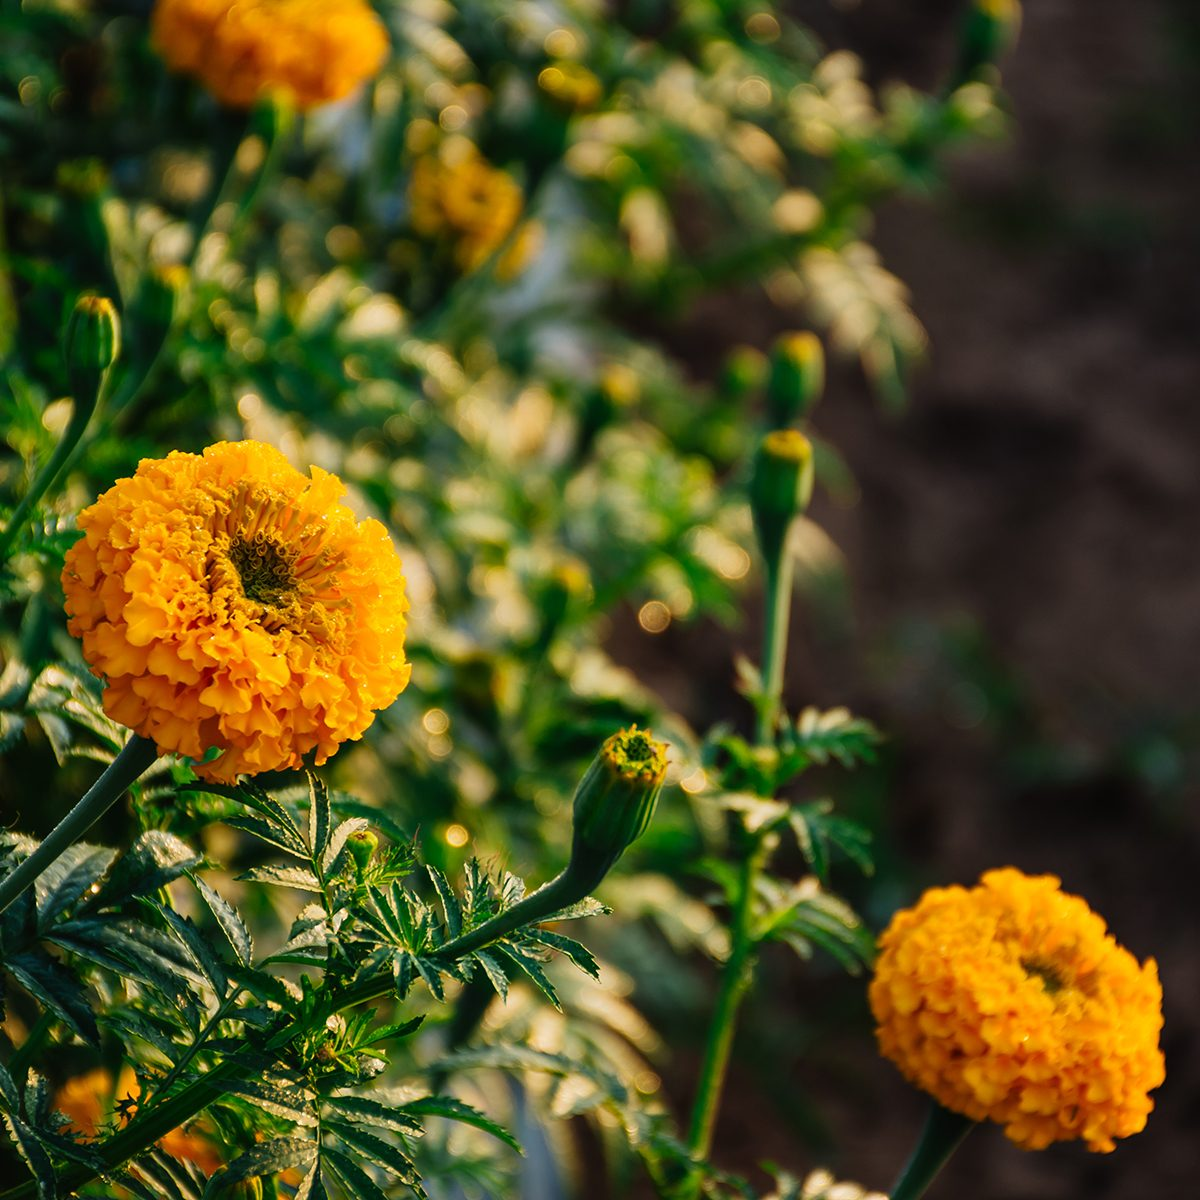 Close up of Marigolds flowers blooming against beautiful sunlight at the garden in Thailand.